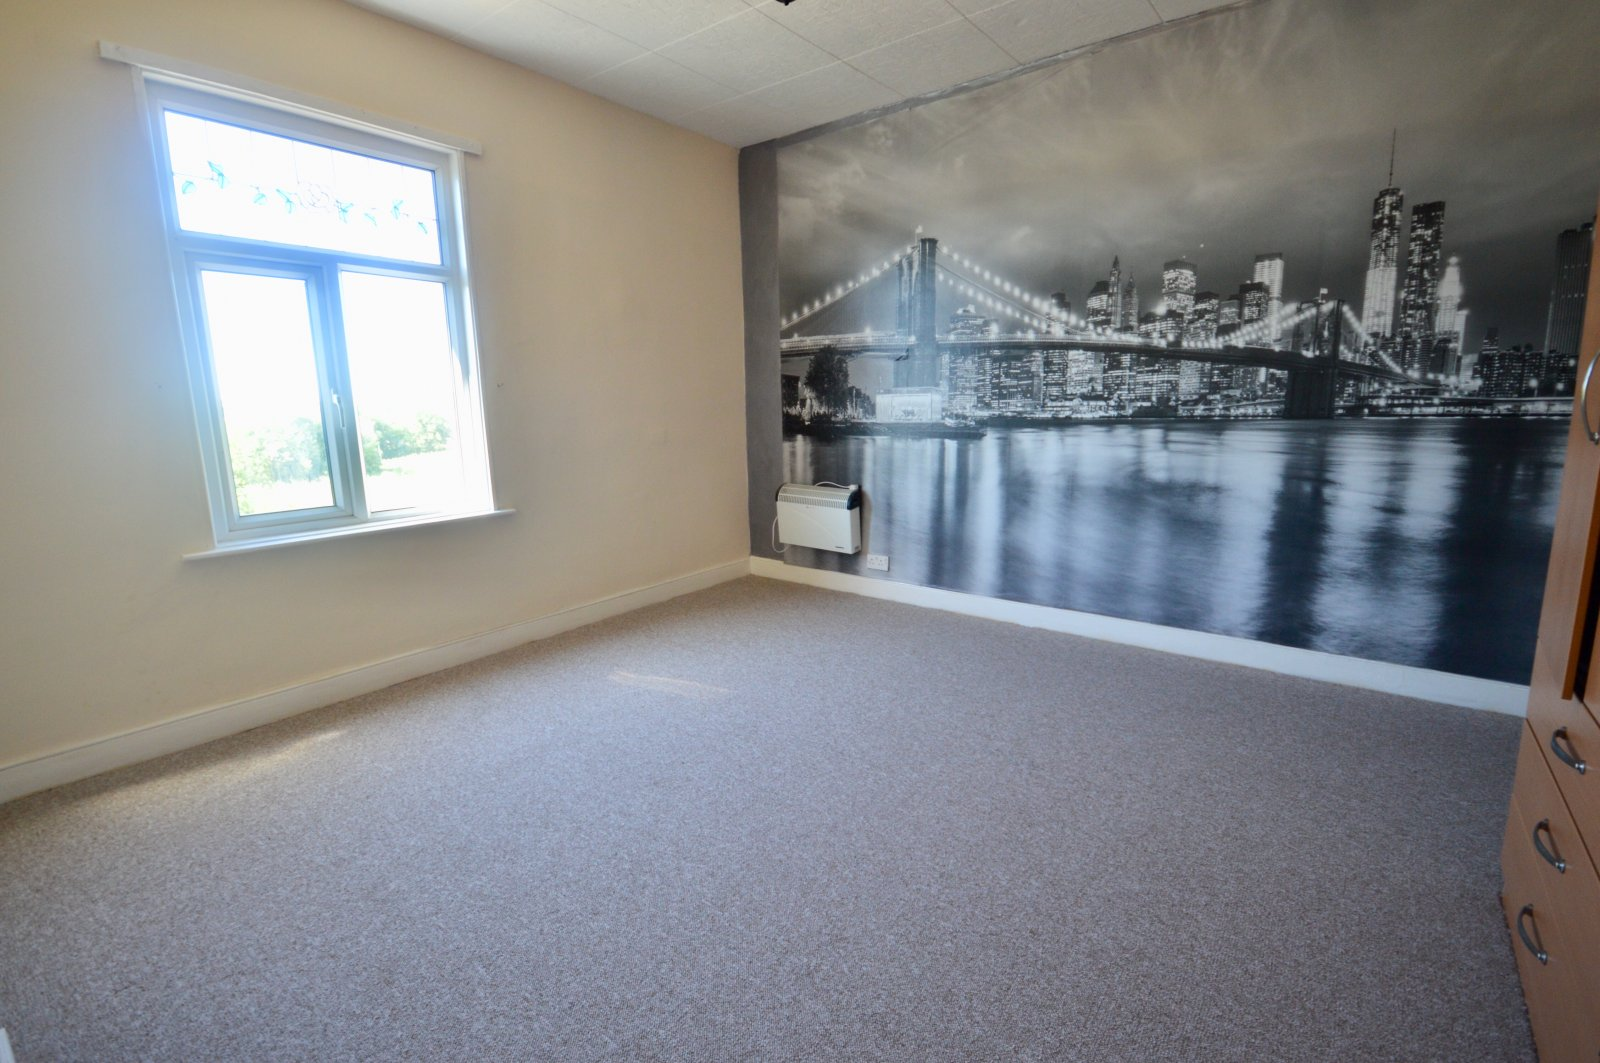 Property for sale in Wakefield, bedroom area, feature wall, skyline wall paper